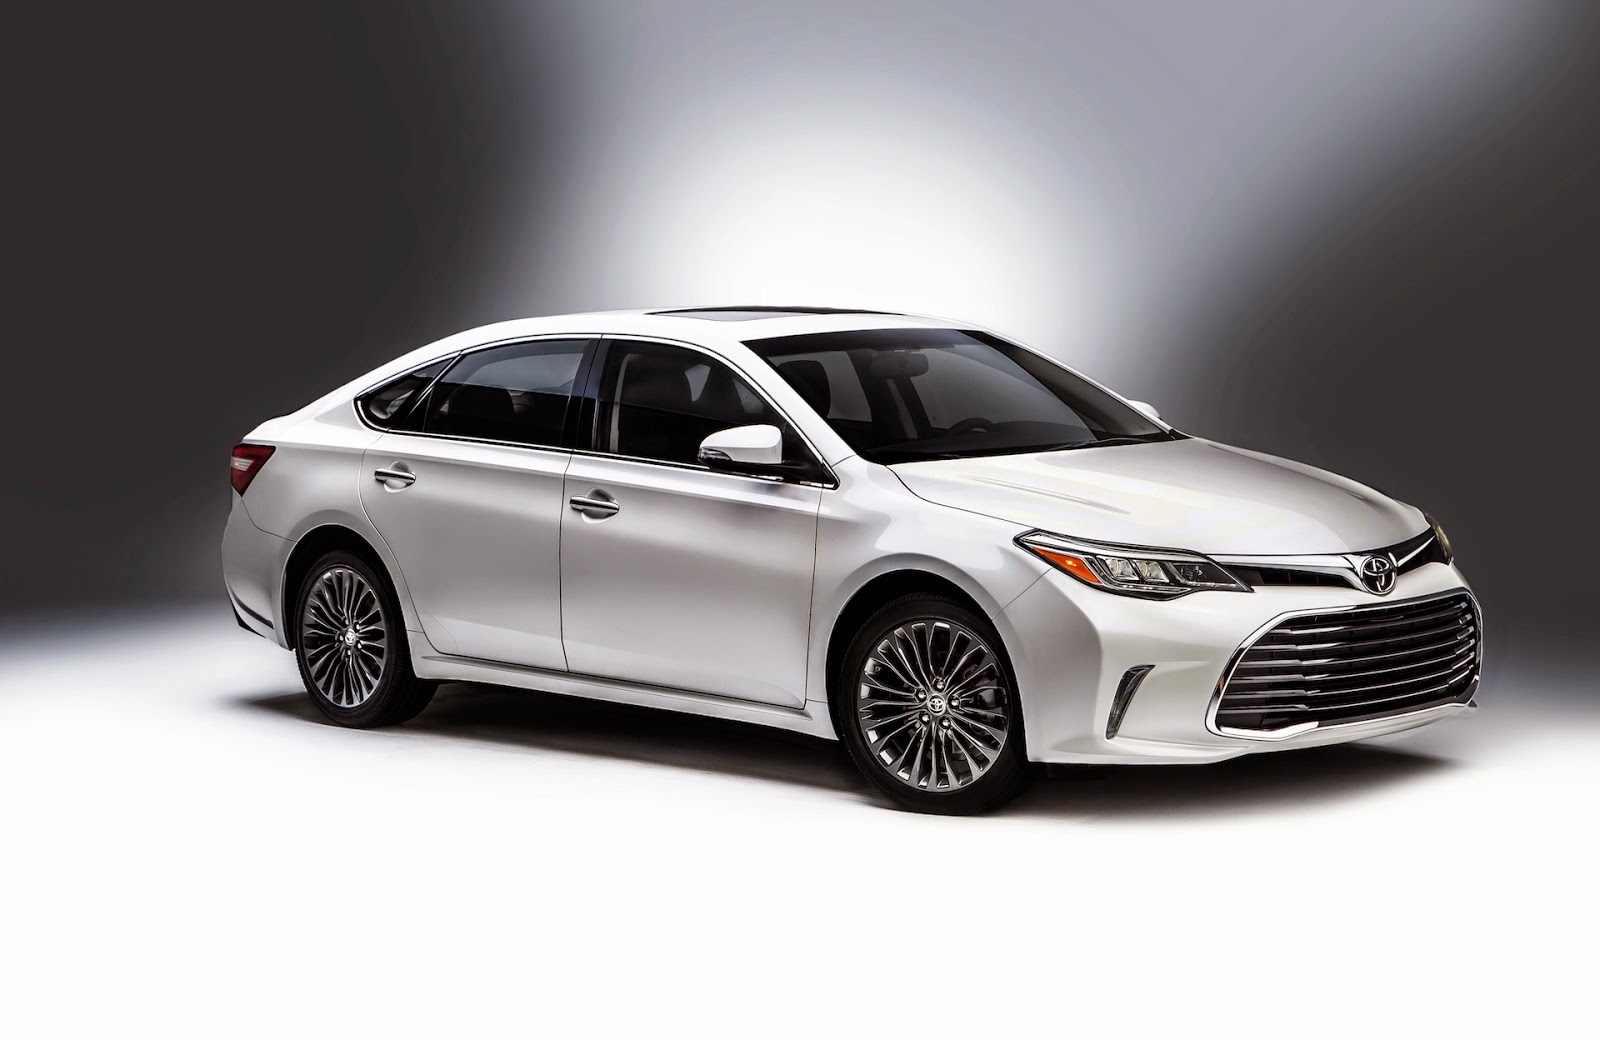 2016 Toyota Avalon Technical Features And Price